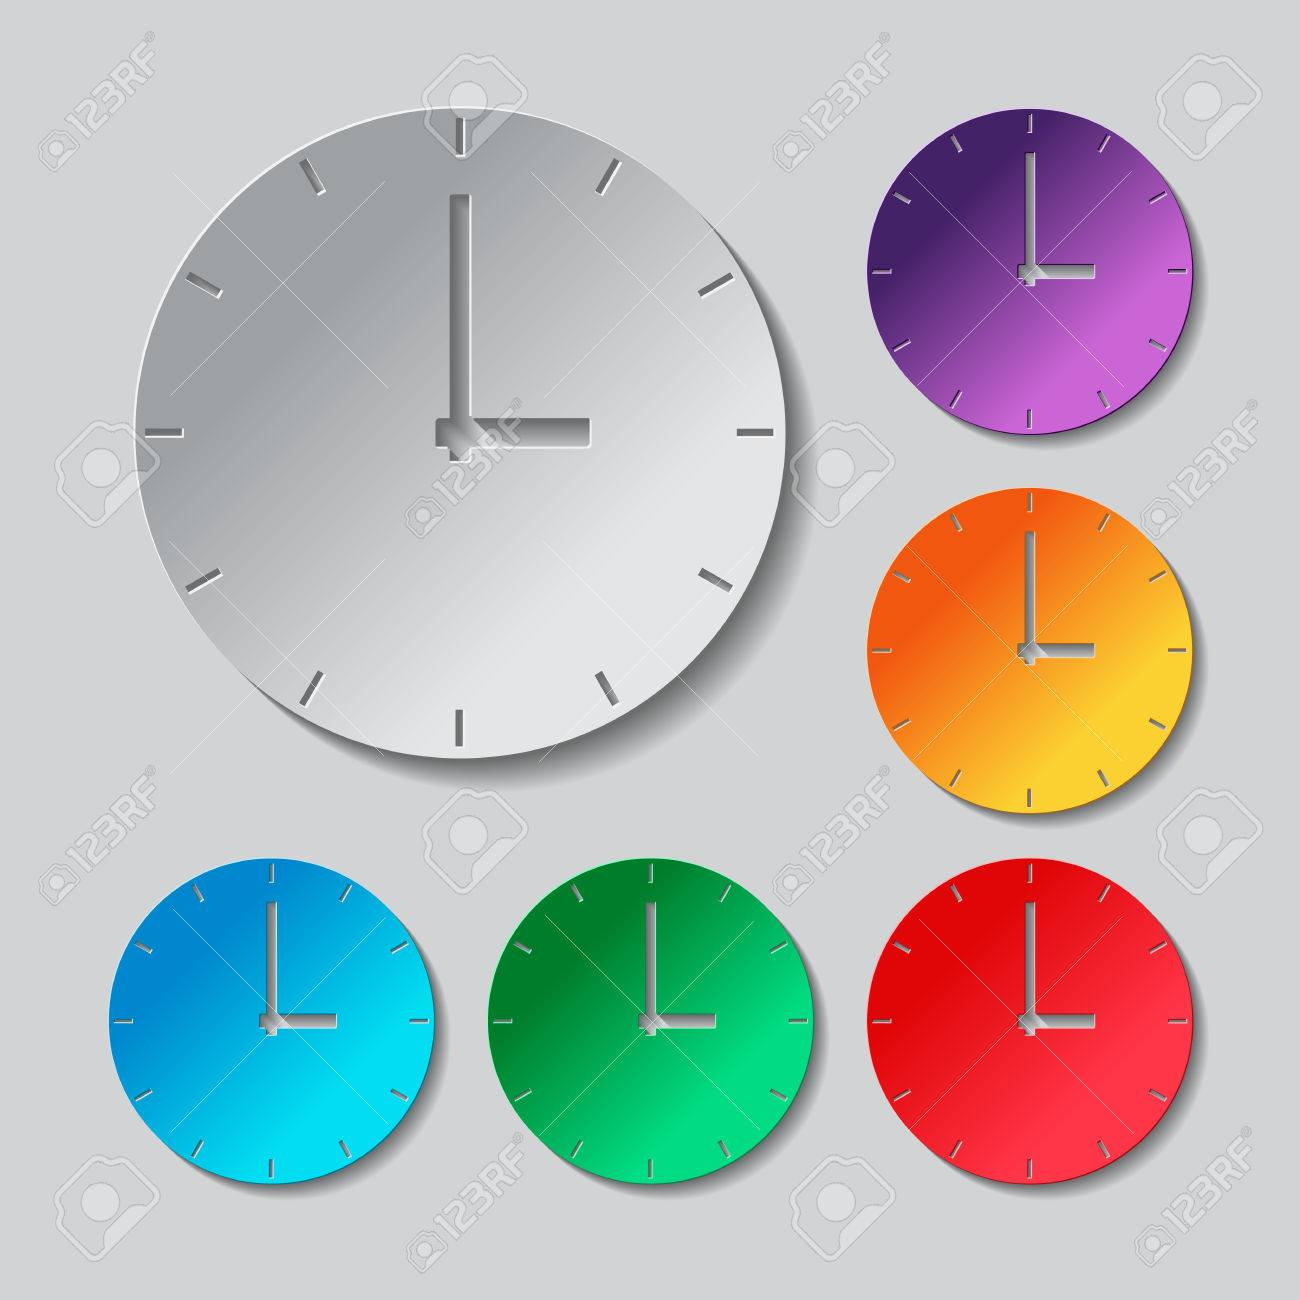 hight resolution of simple clock icon paper style colored set stock vector 59795141